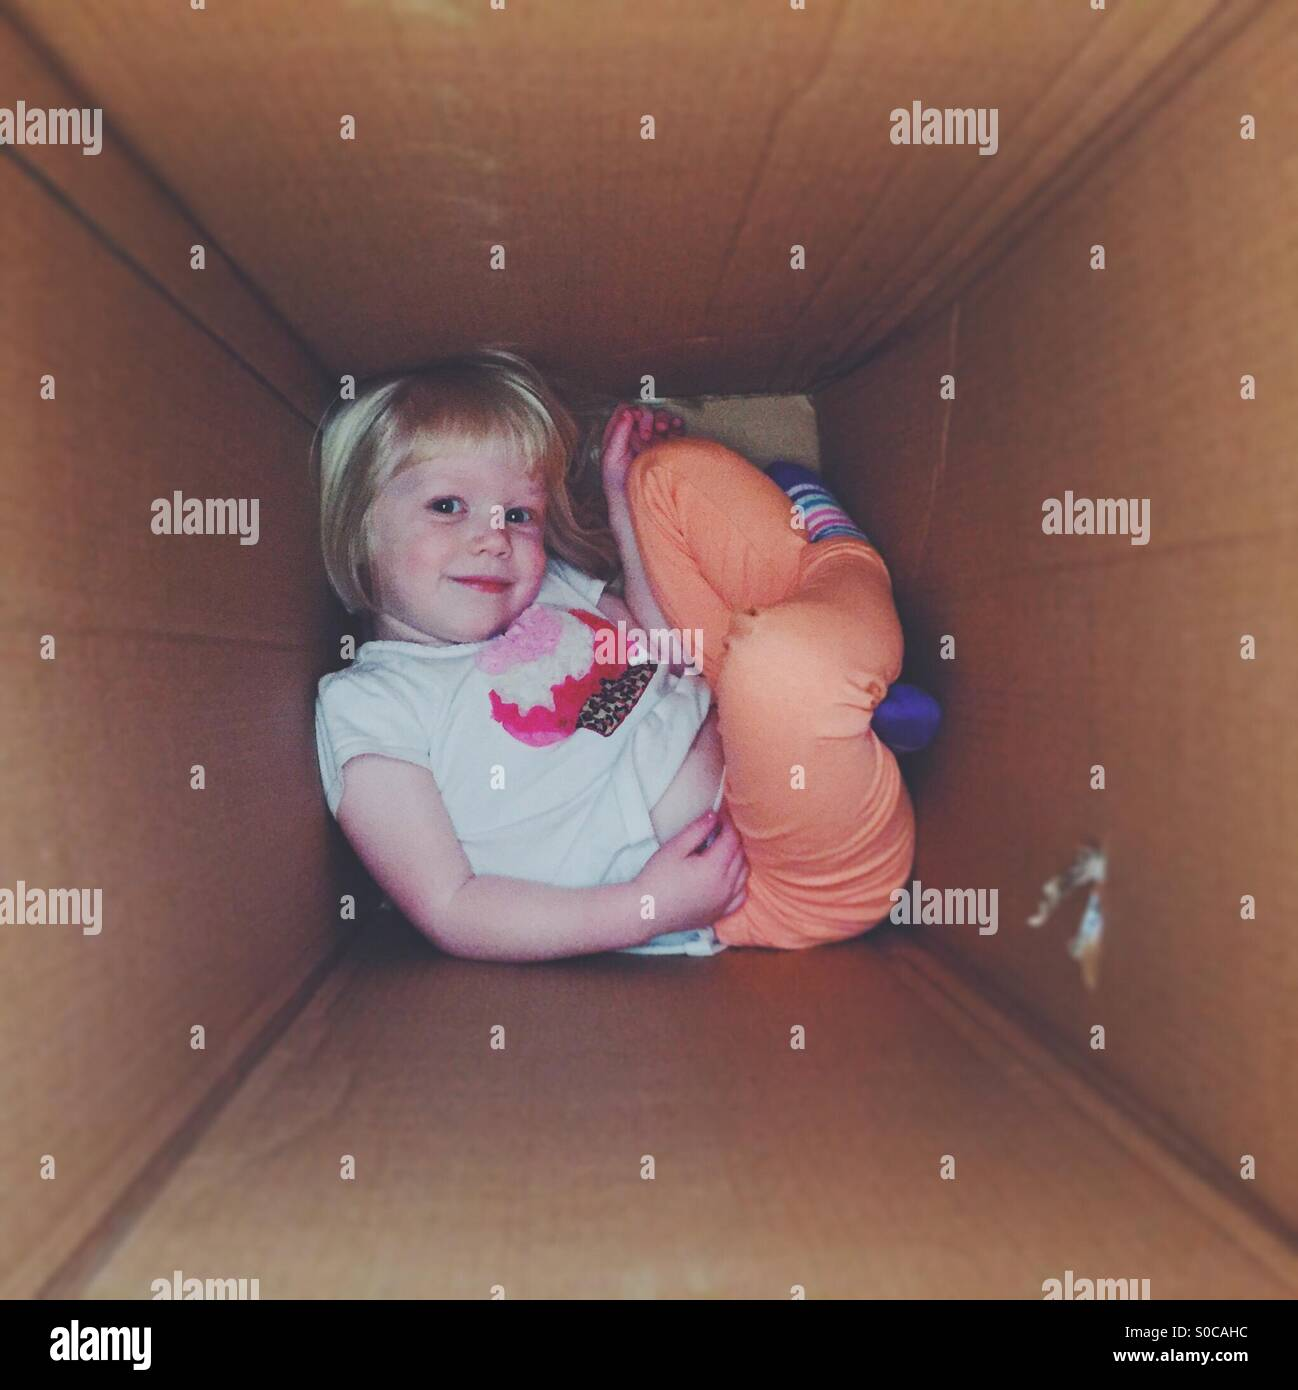 Young blond girl smiling and posing while playing in a large cardboard box. - Stock Image